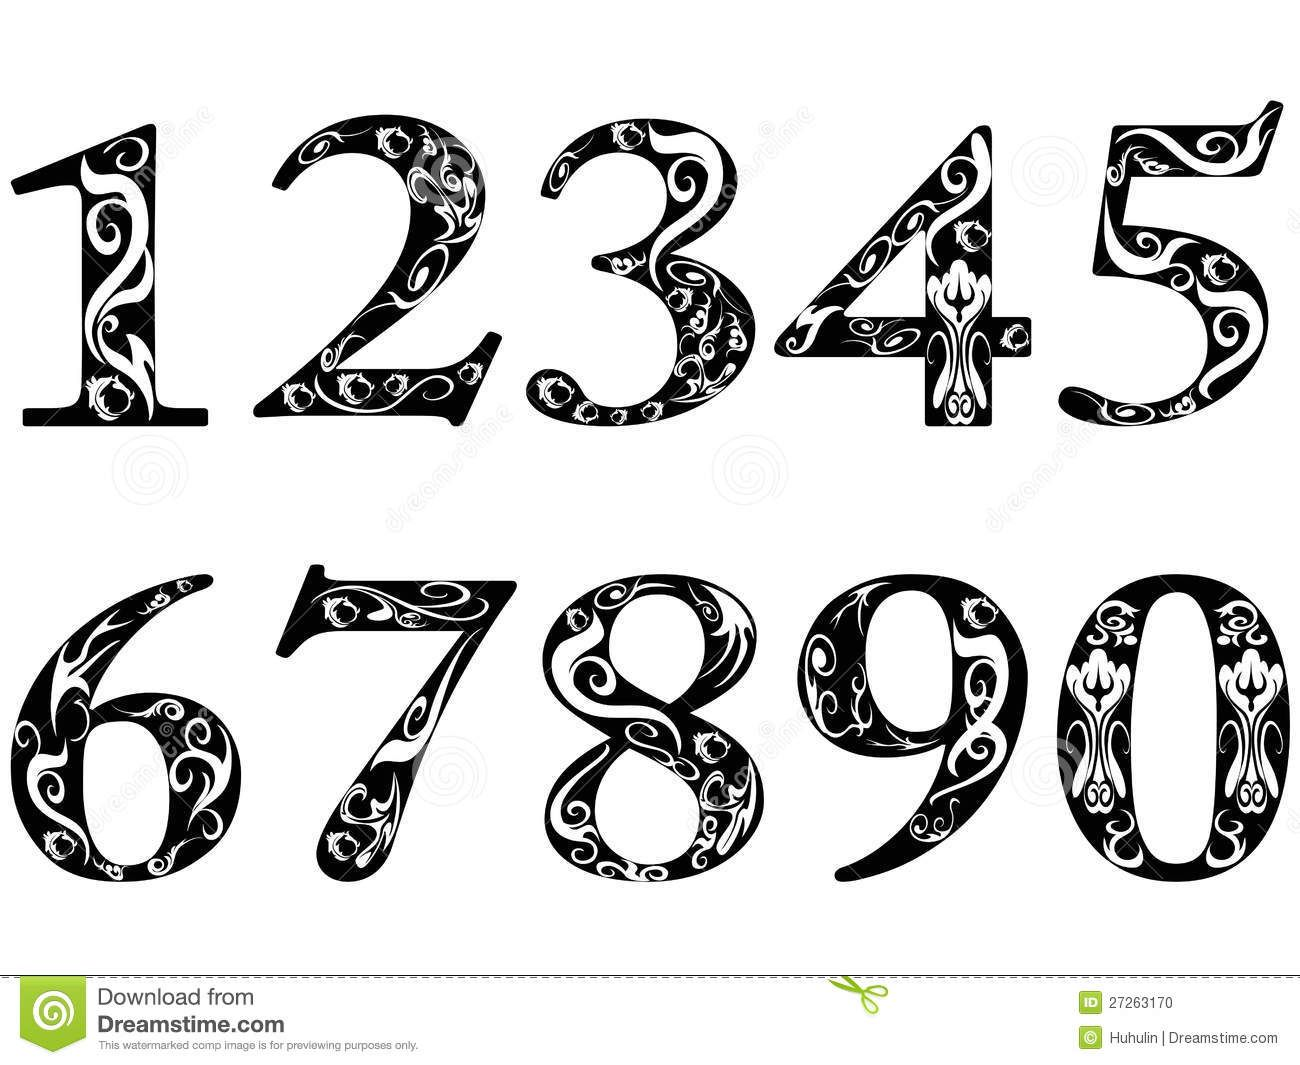 Pattern Numbers 27263170 1300x1065